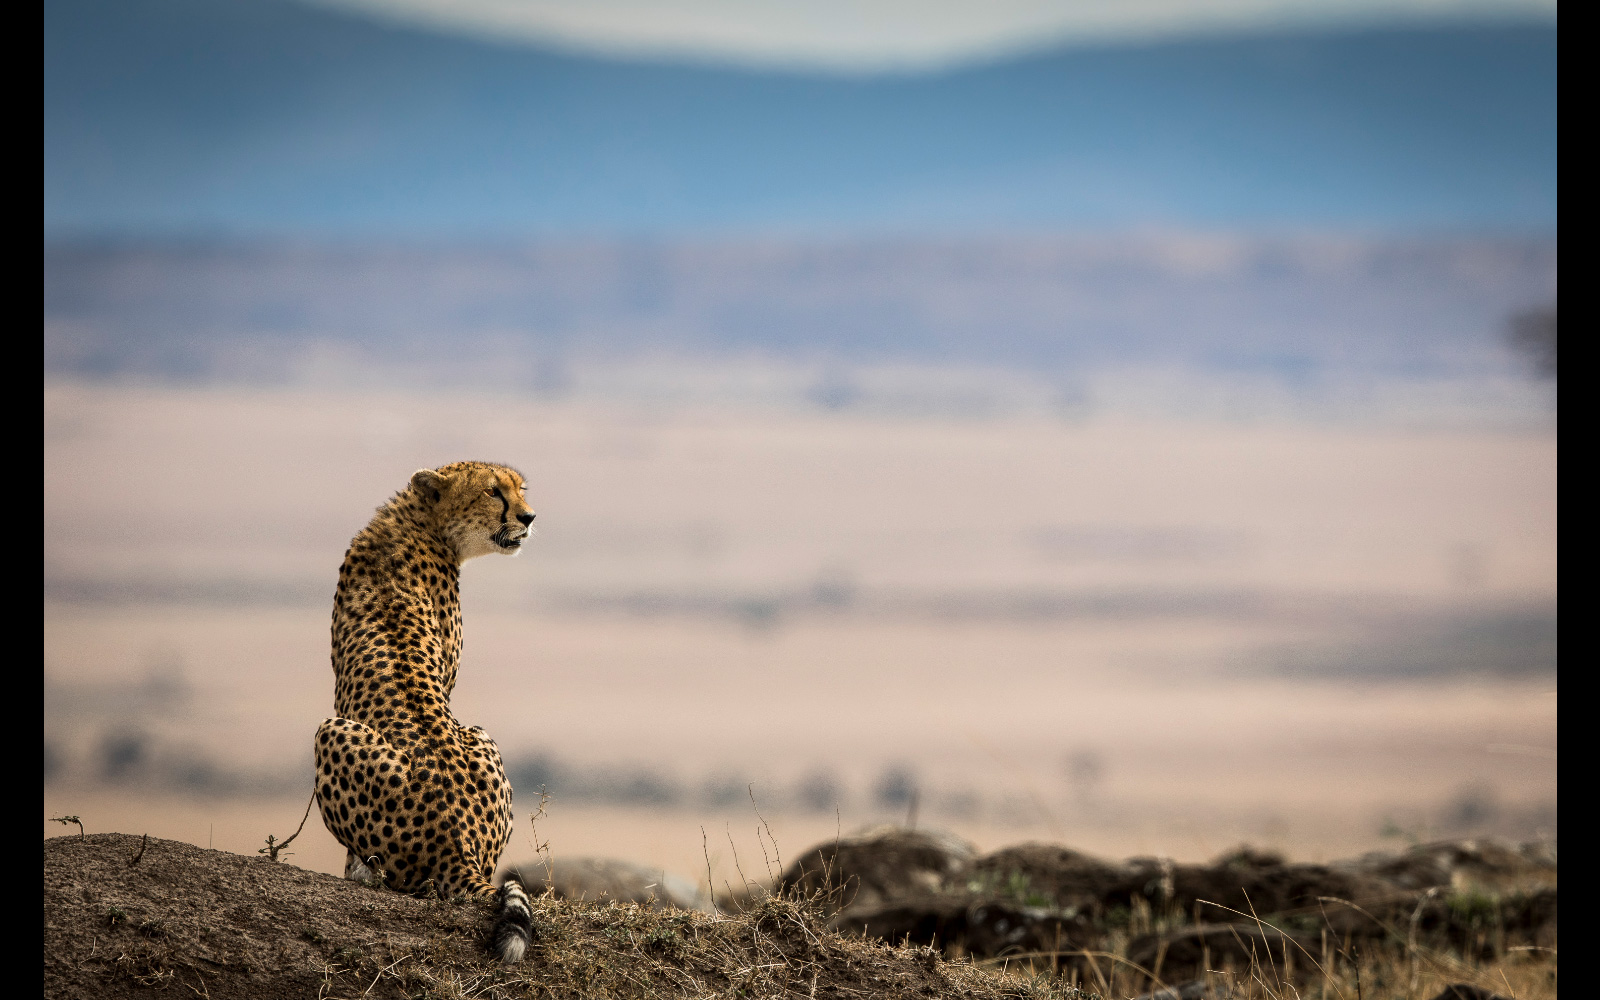 A cheetah on the lookout in Maasai Mara National Reserve, Kenya © Patrice Quillard